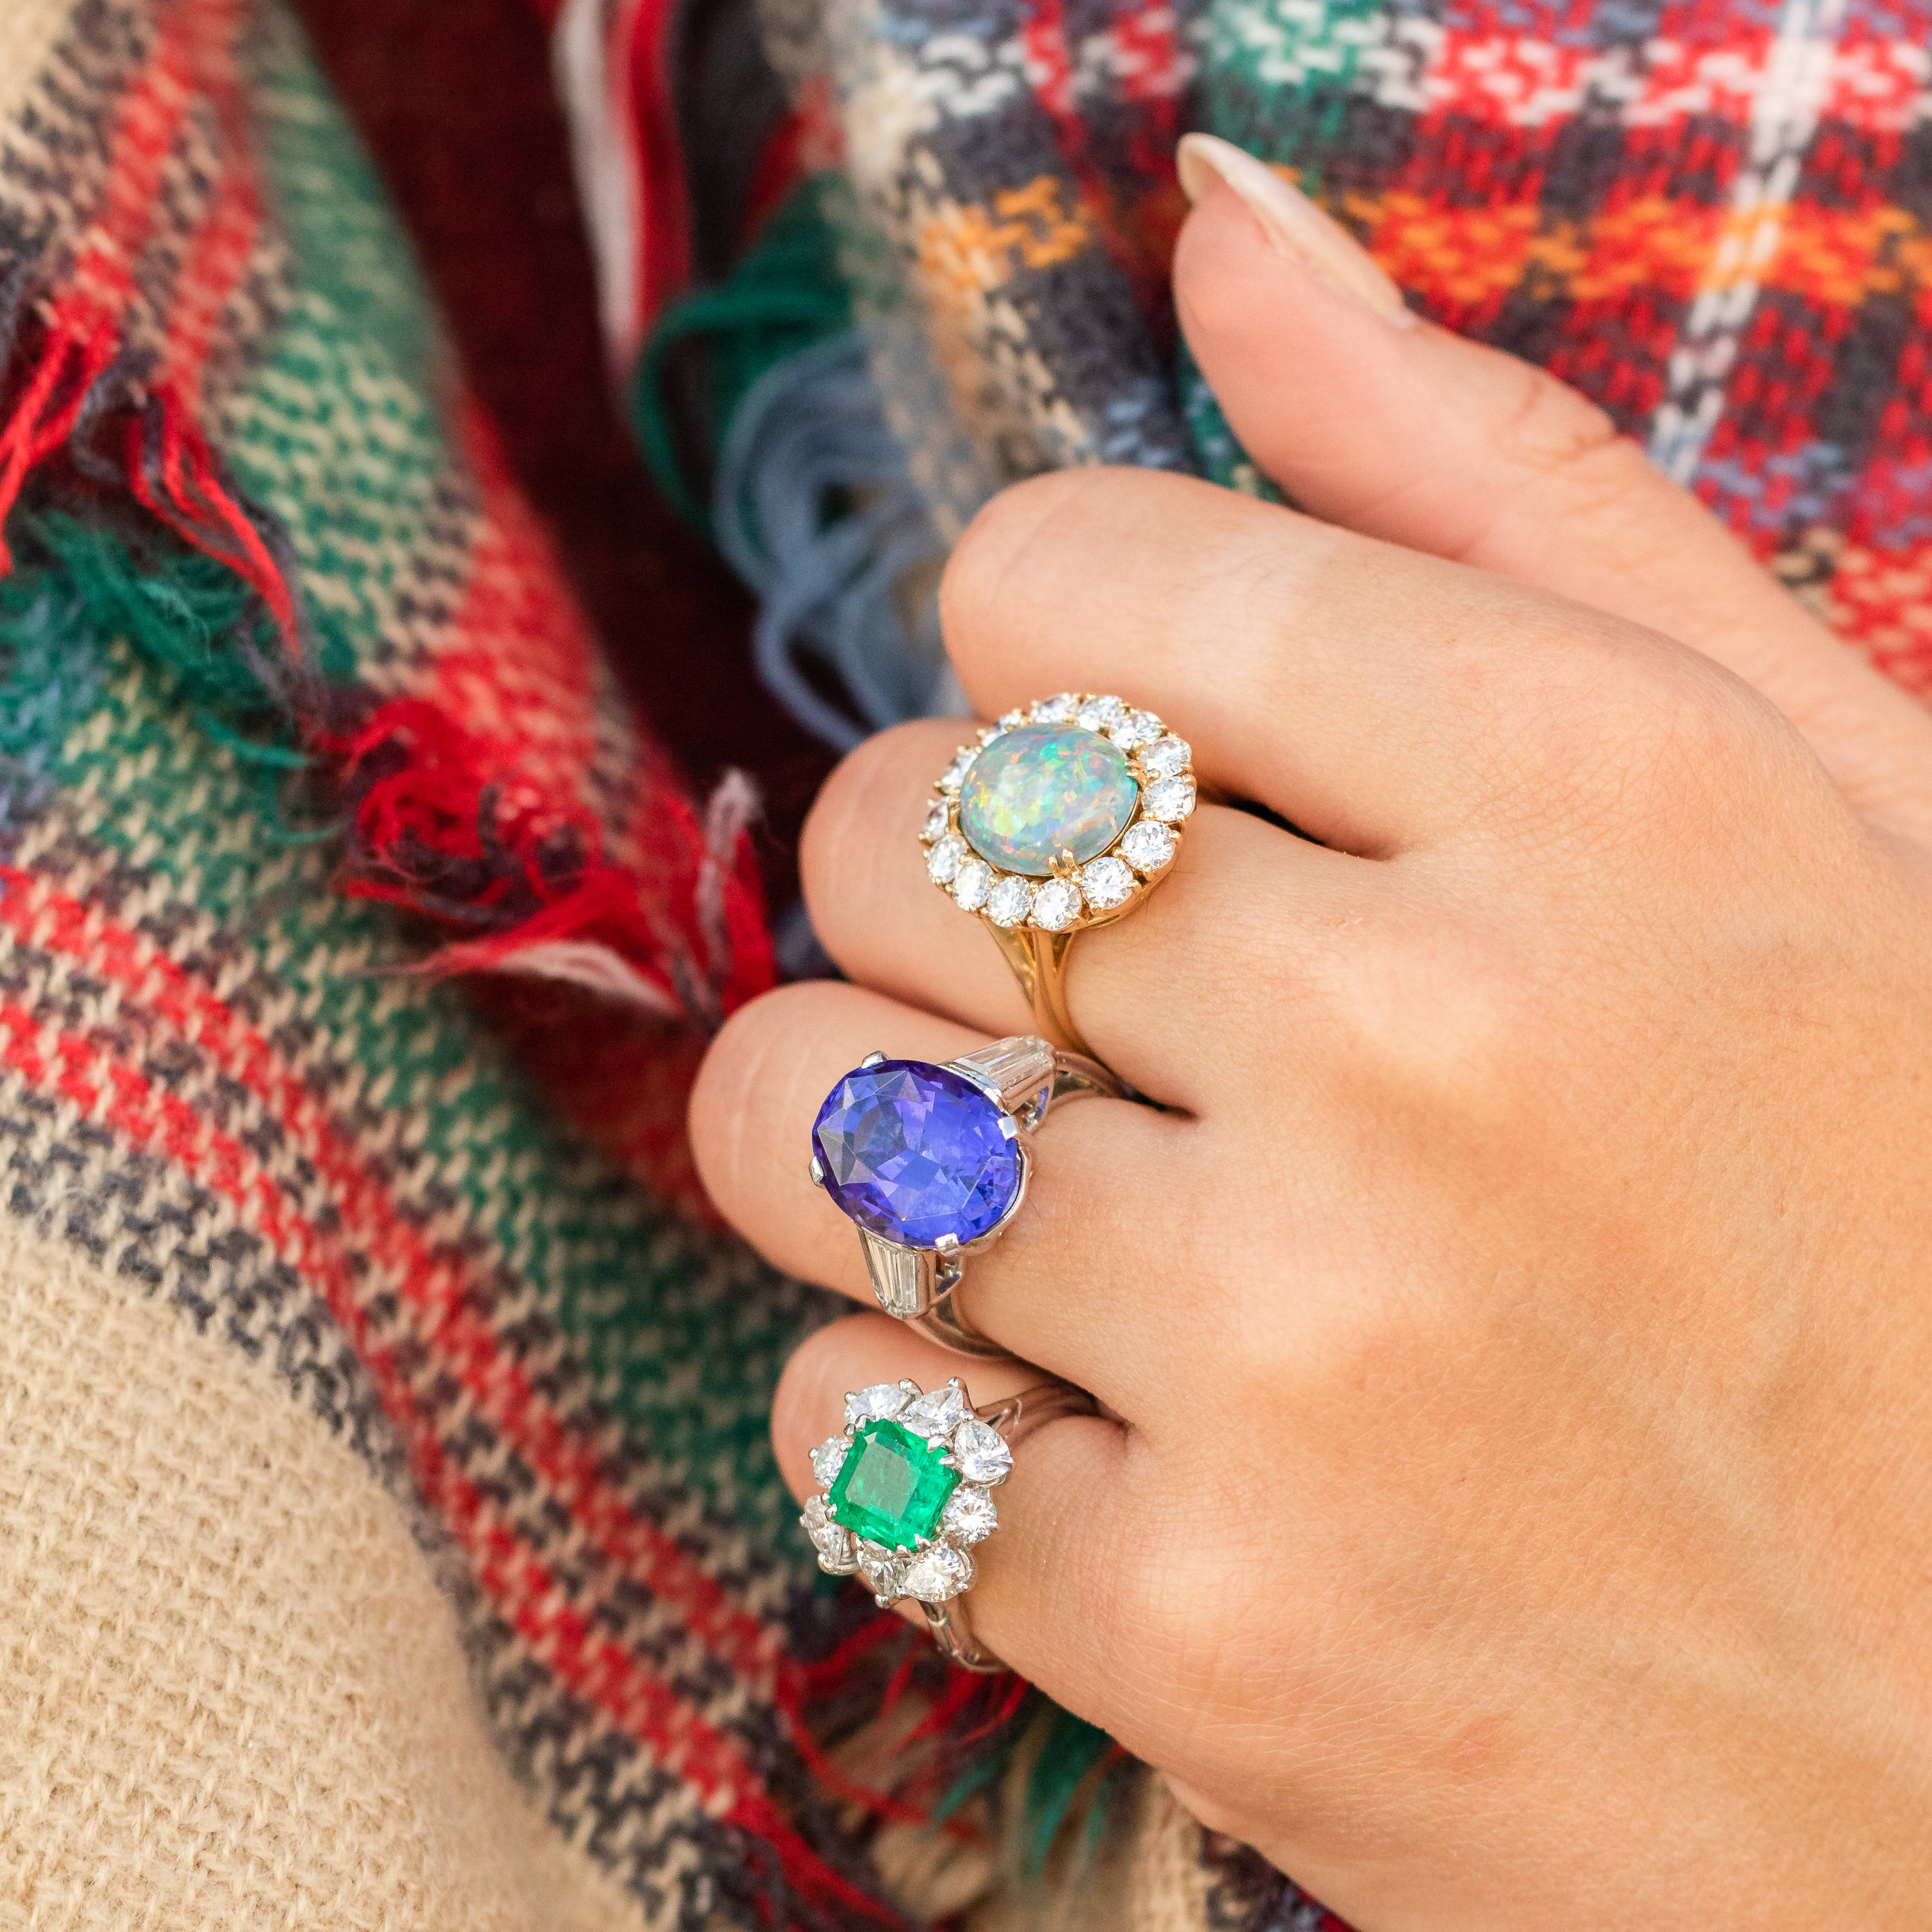 Opal, Sapphire, and Emerald Rings